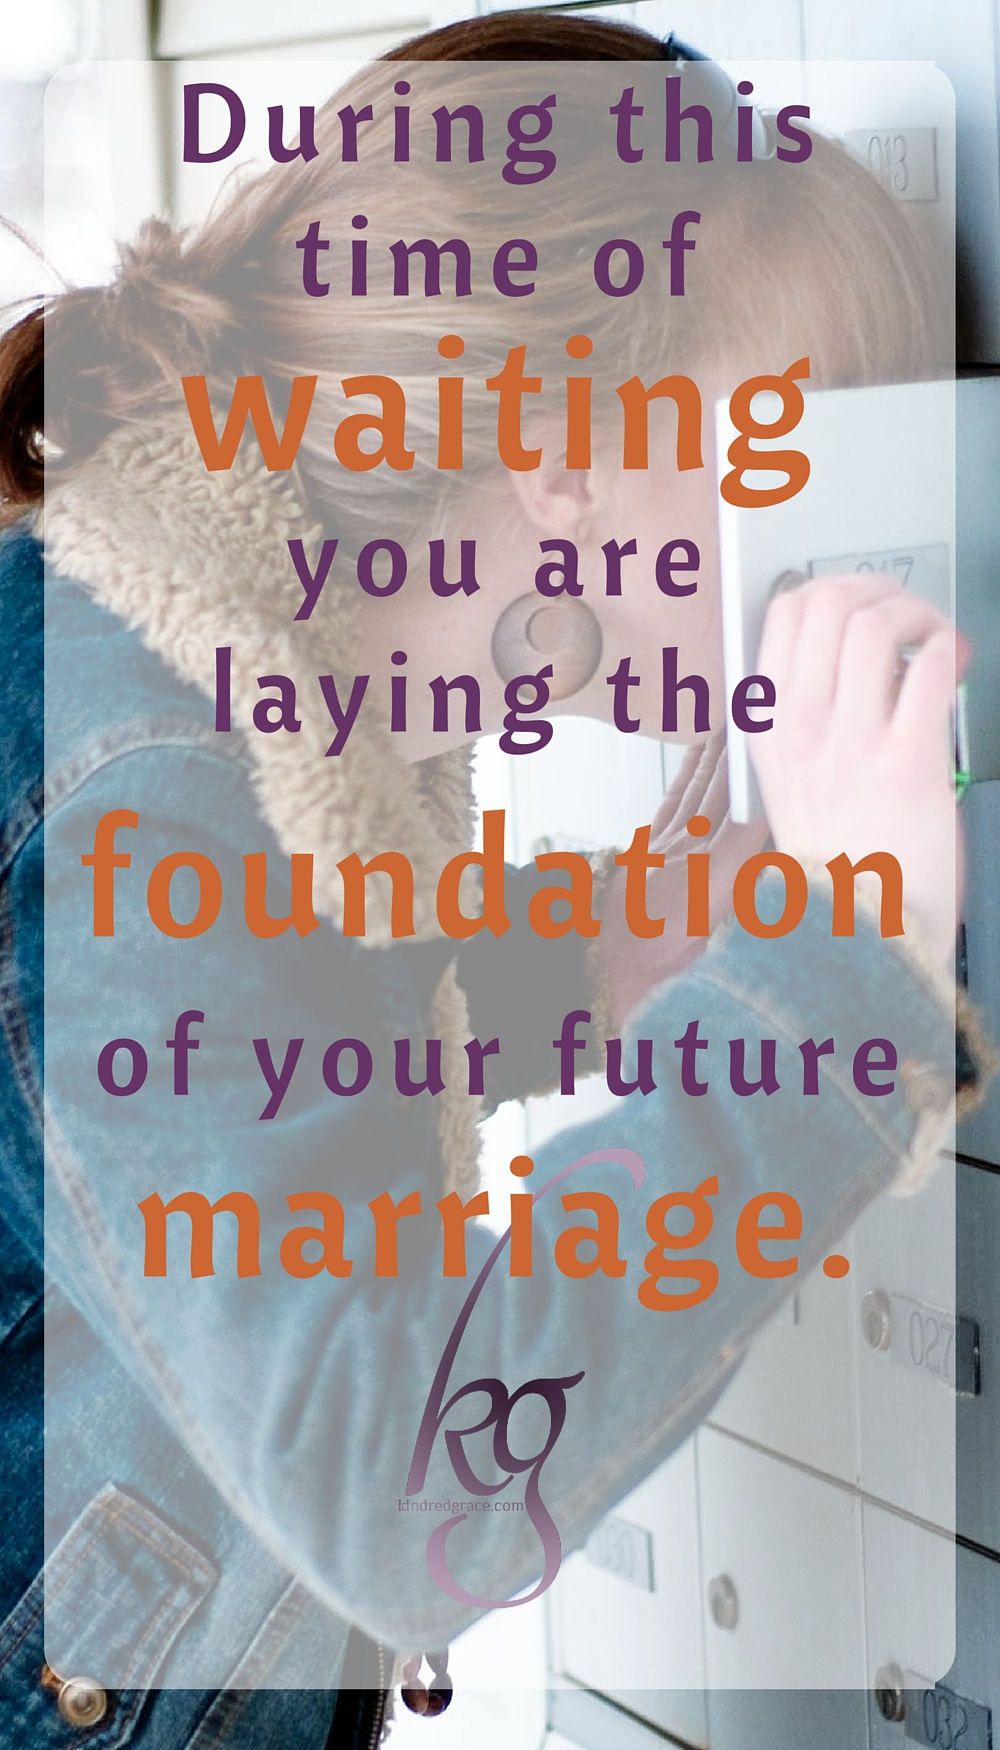 you are laying the foundation of your future marriage via @KindredGrace